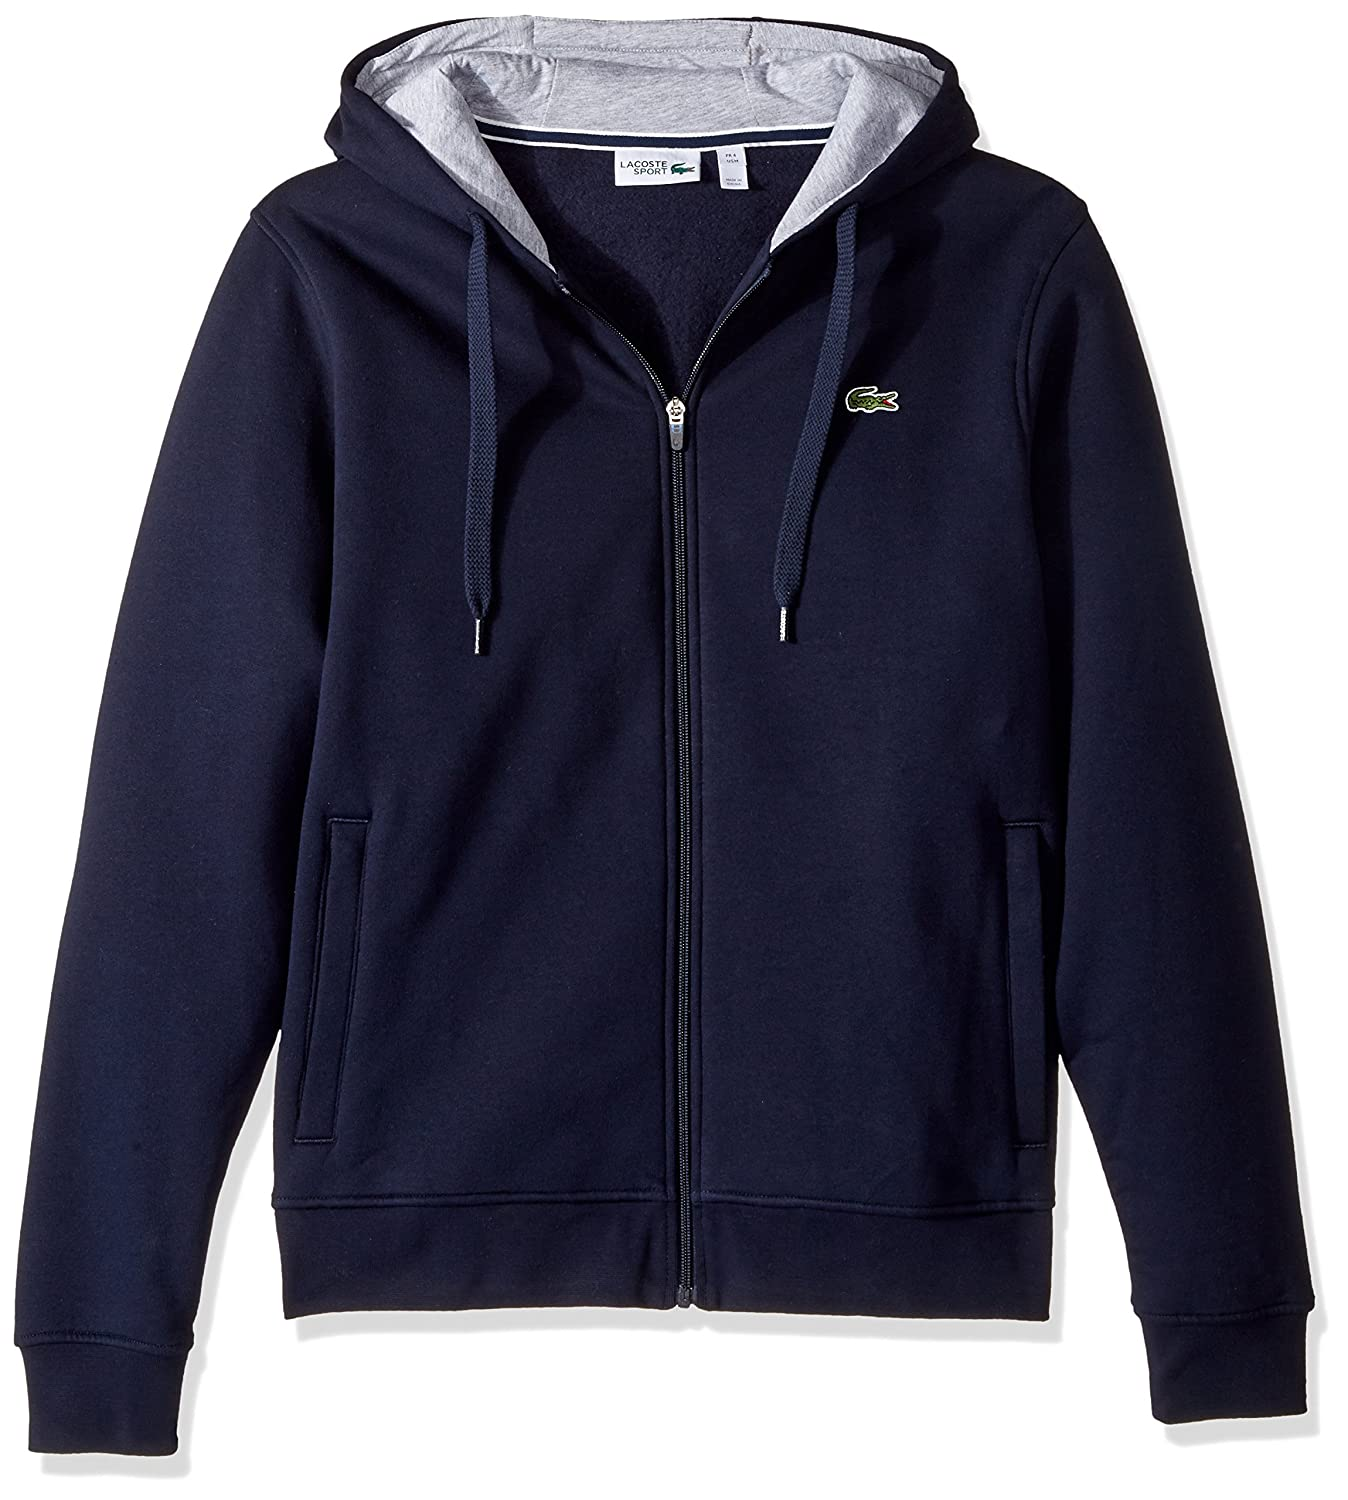 793eaa2fcfa45b Lacoste Mens Sport Full Zip Hoodie Fleece Sweatshirt  Amazon.ca  Clothing    Accessories